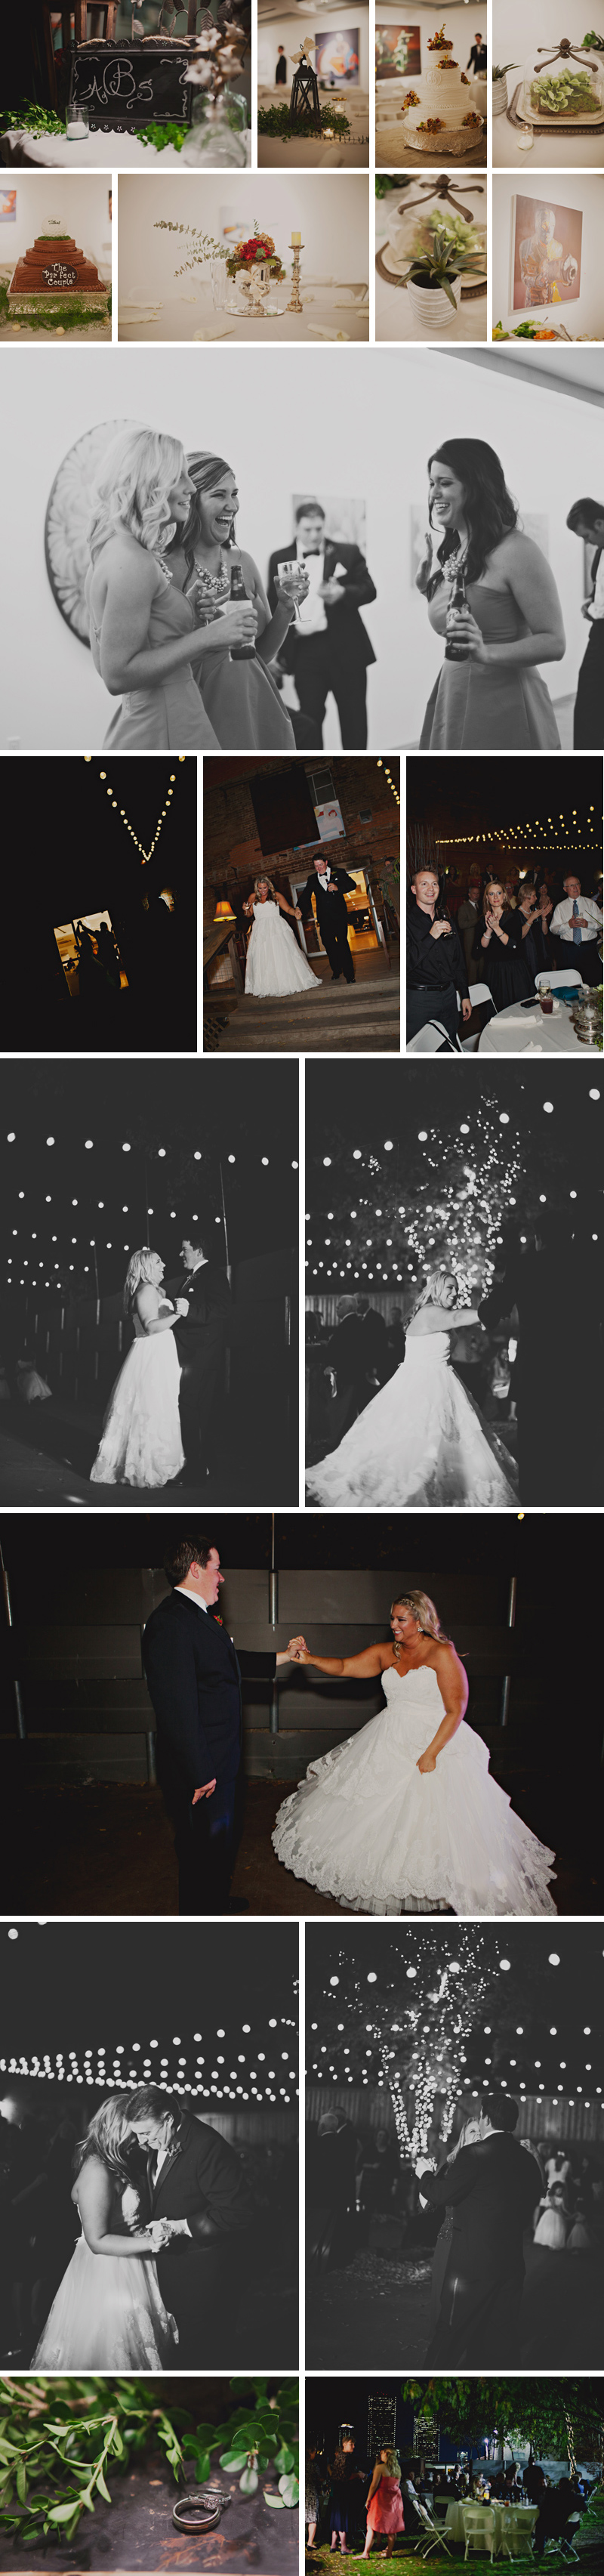 Dallas-Wedding-Photographerc013